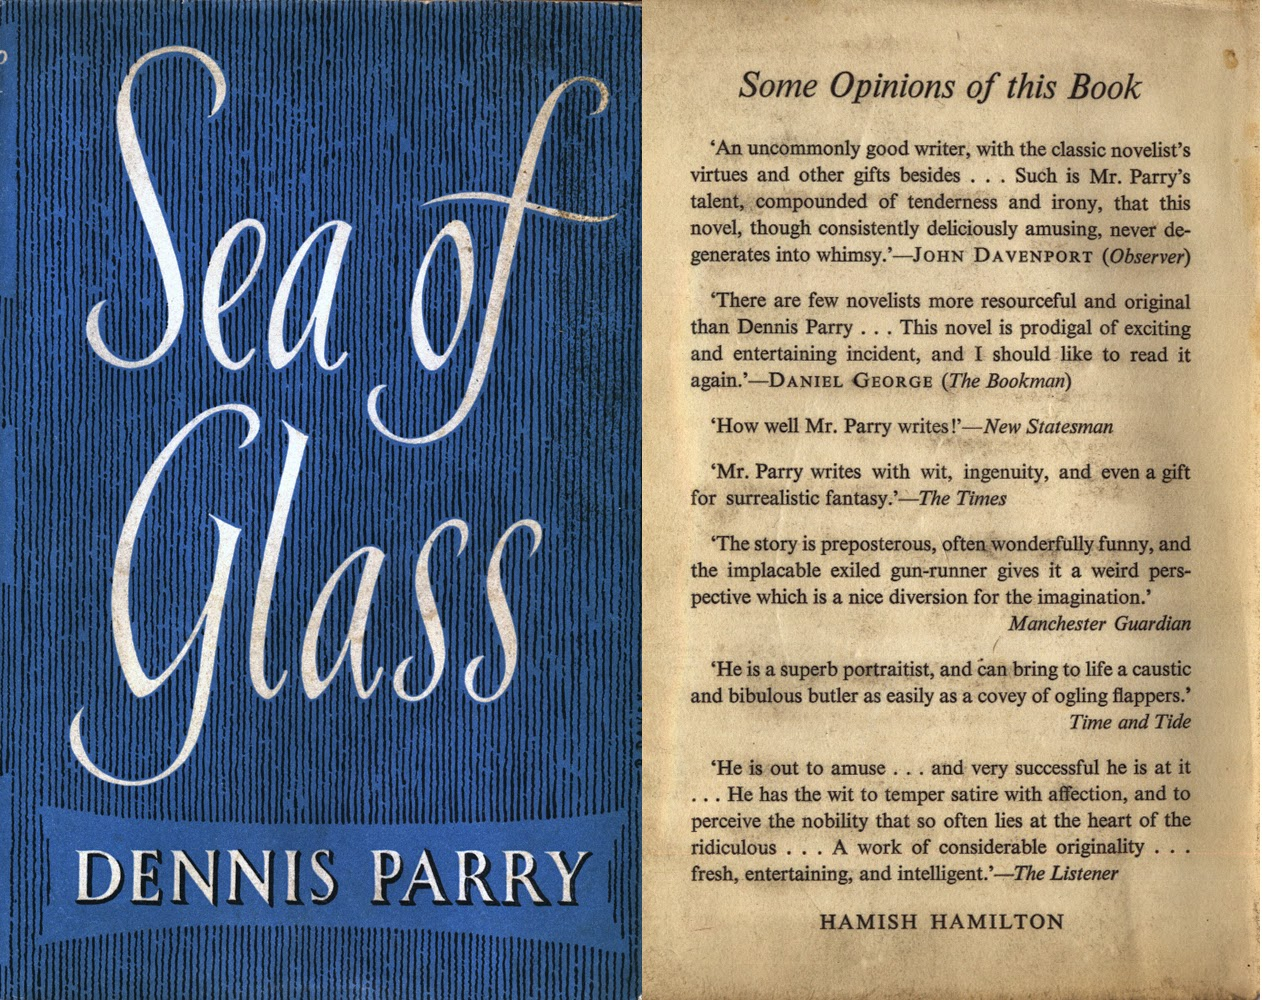 Valancourt books blog sea of glass his last book was one of his most successful earning rave reviews and going into a second edition but unfortunately parry died shortly fandeluxe Images